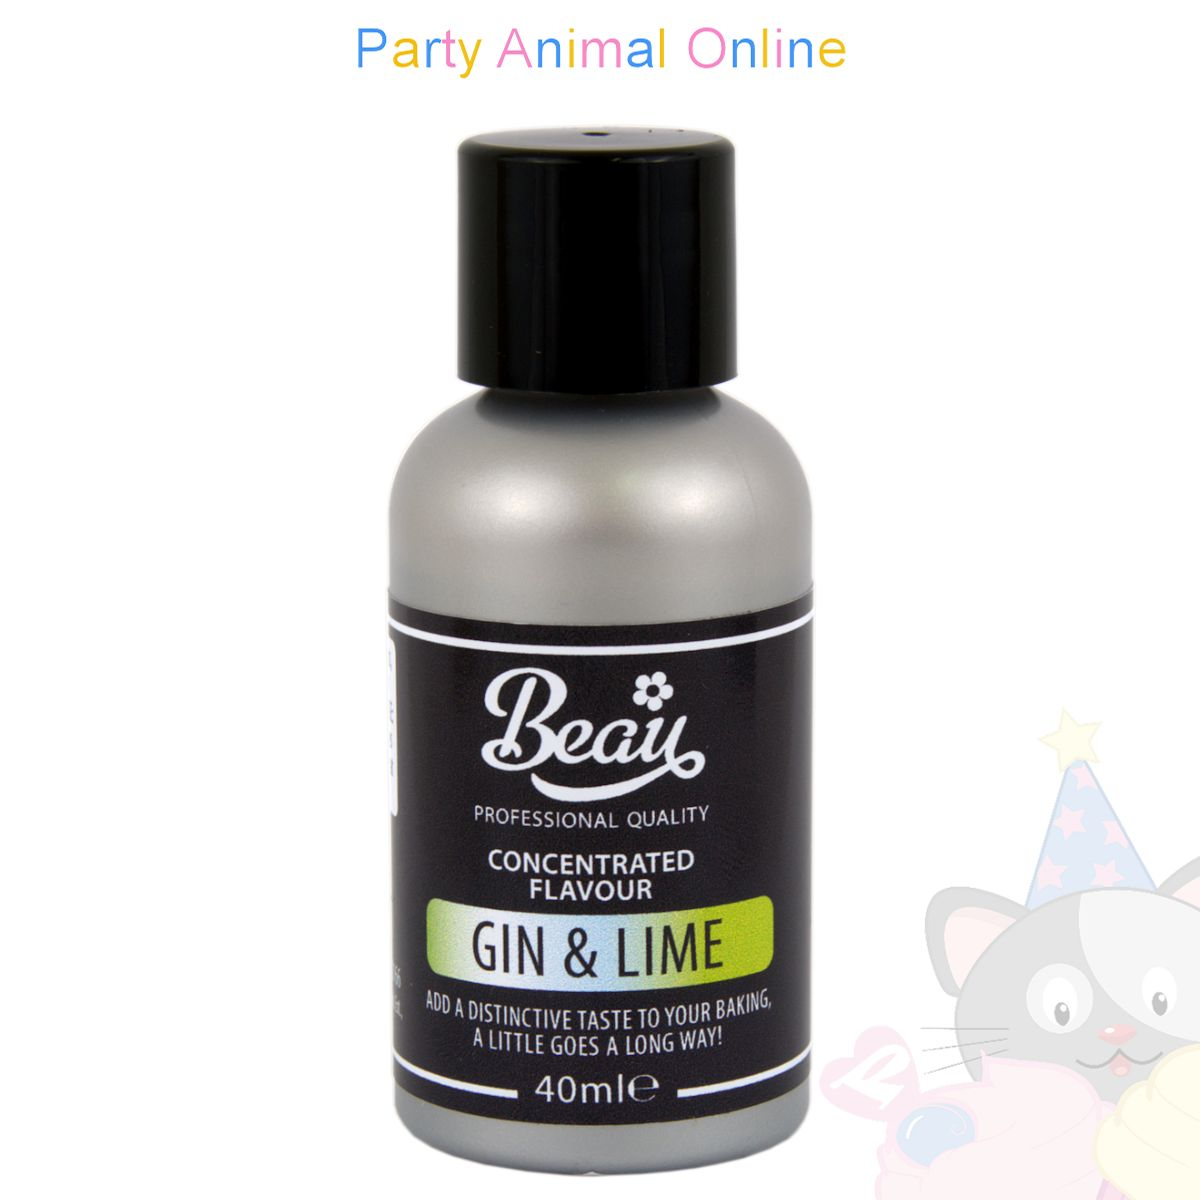 Beau Products GIN & LIME Food Flavouring